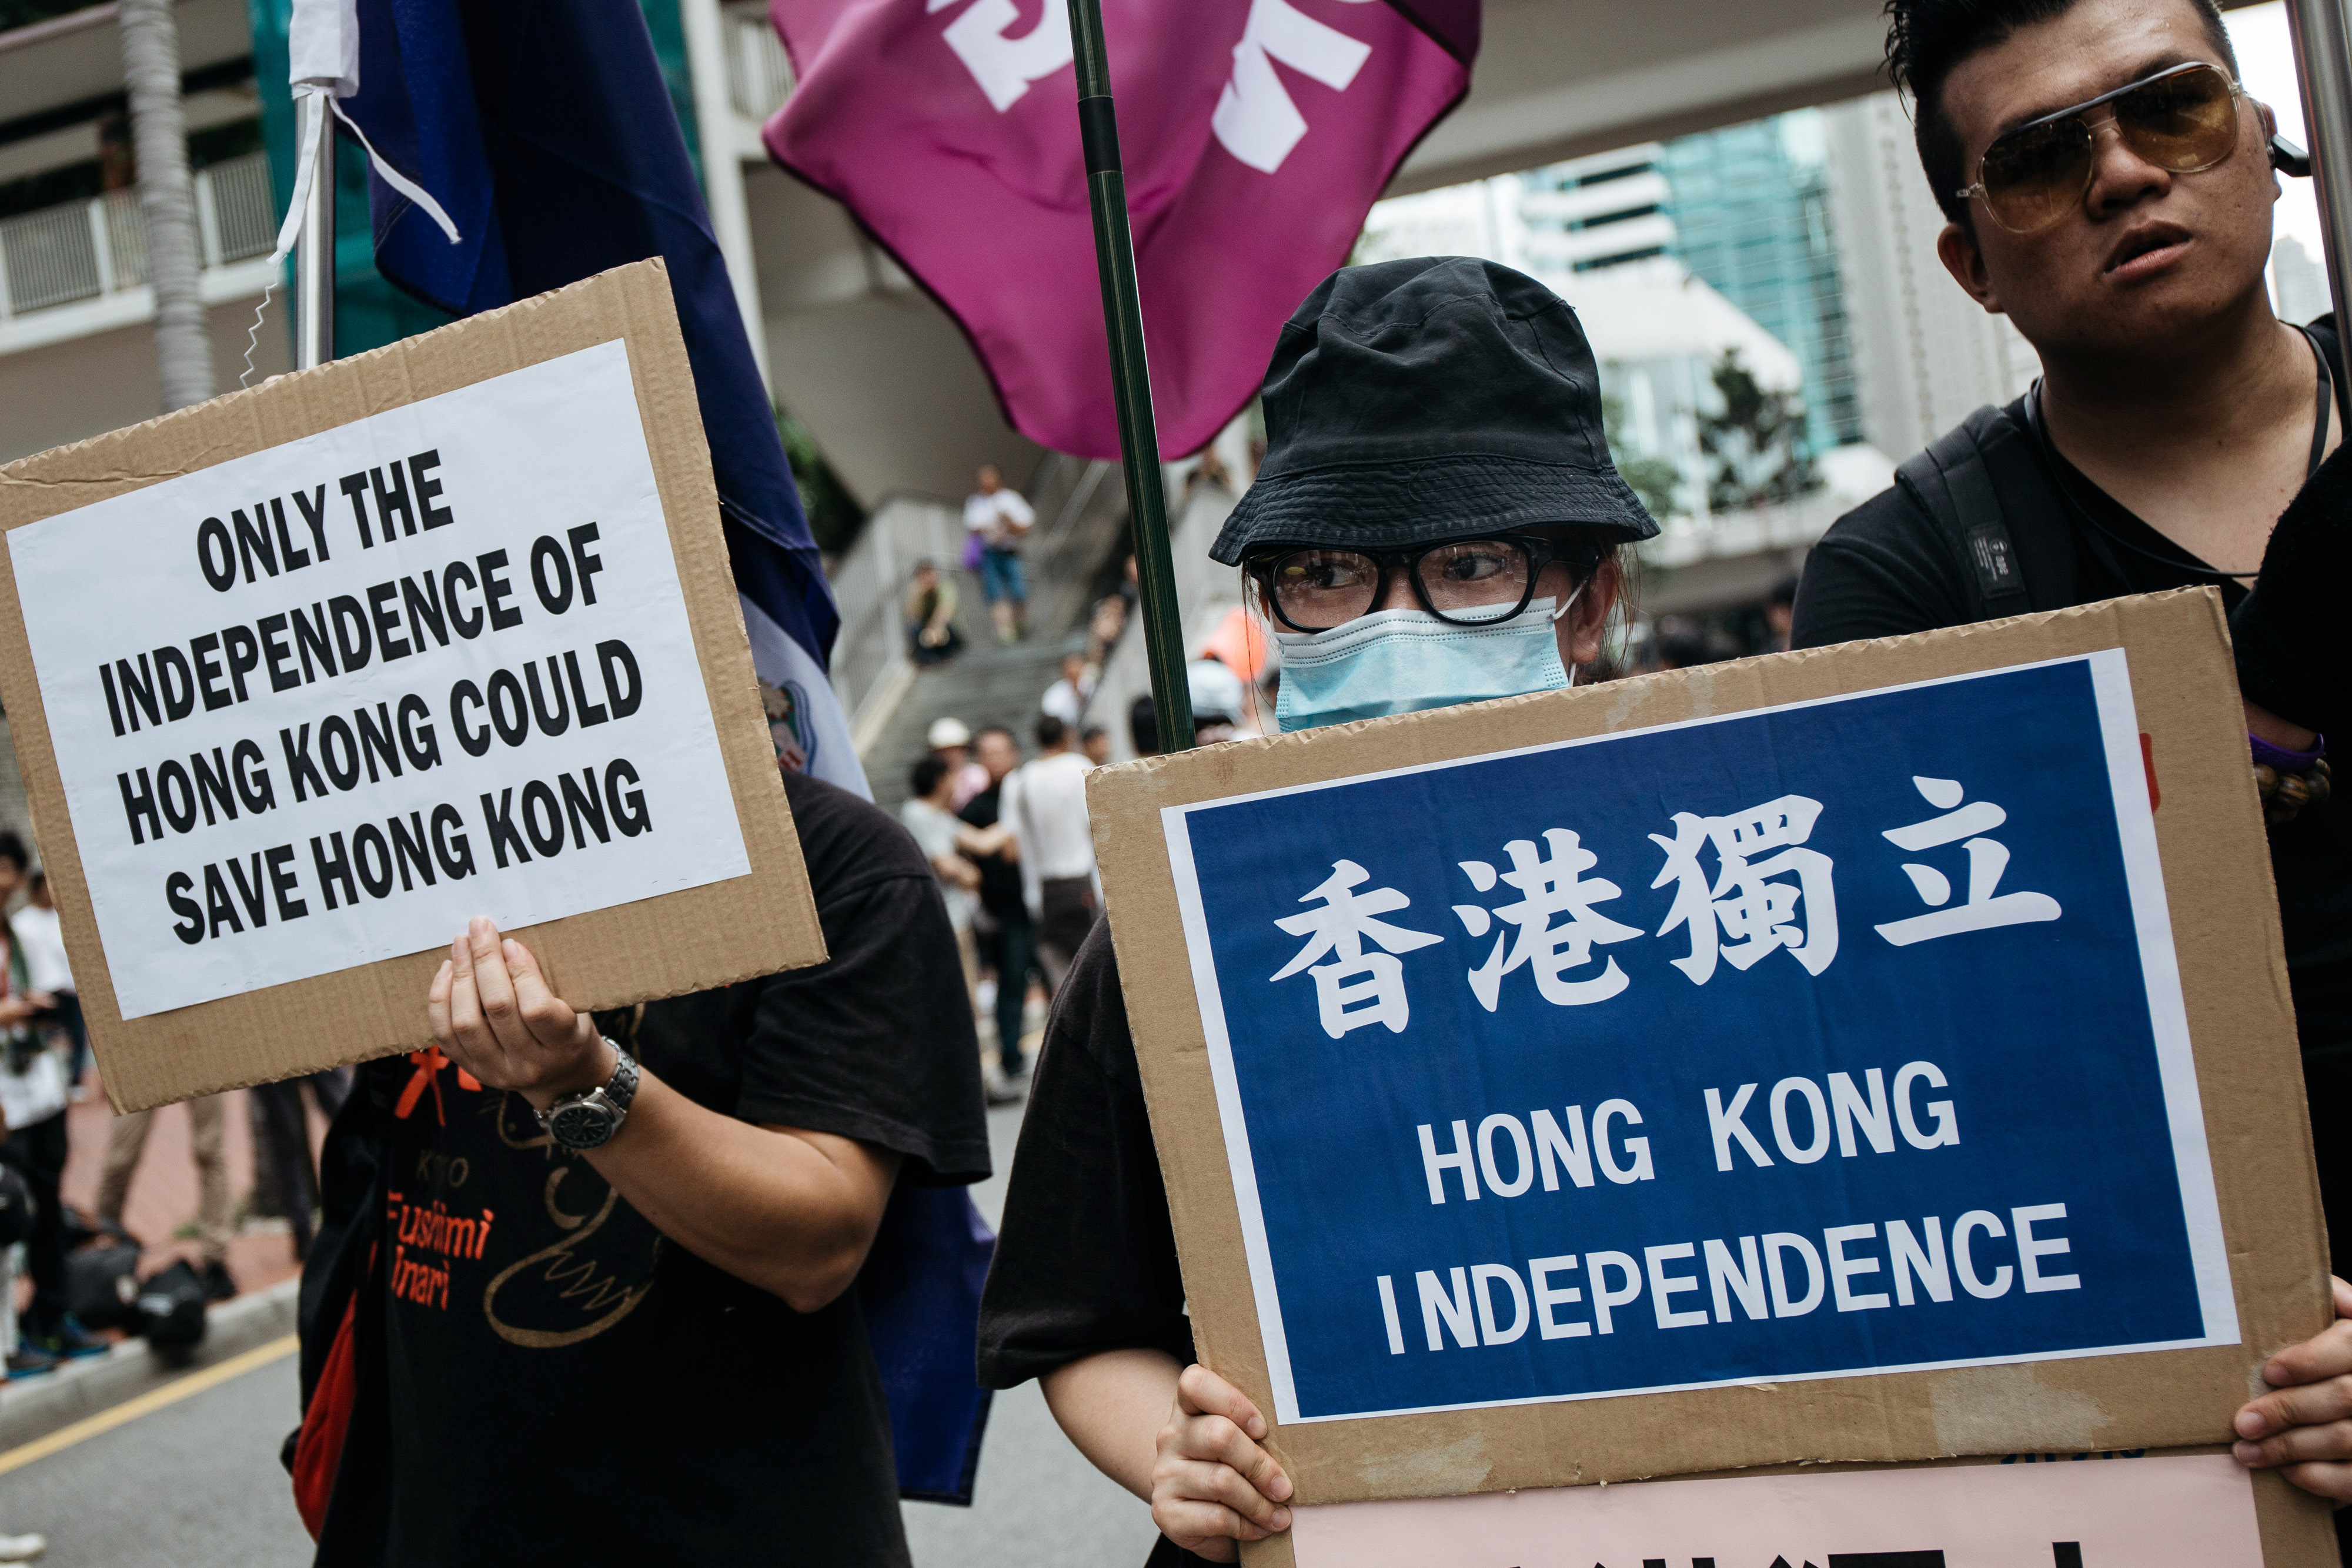 Protesters hold placards calling for Hong Kong's independence as they march on the street during a rally on July 1, 2016, in Hong Kong